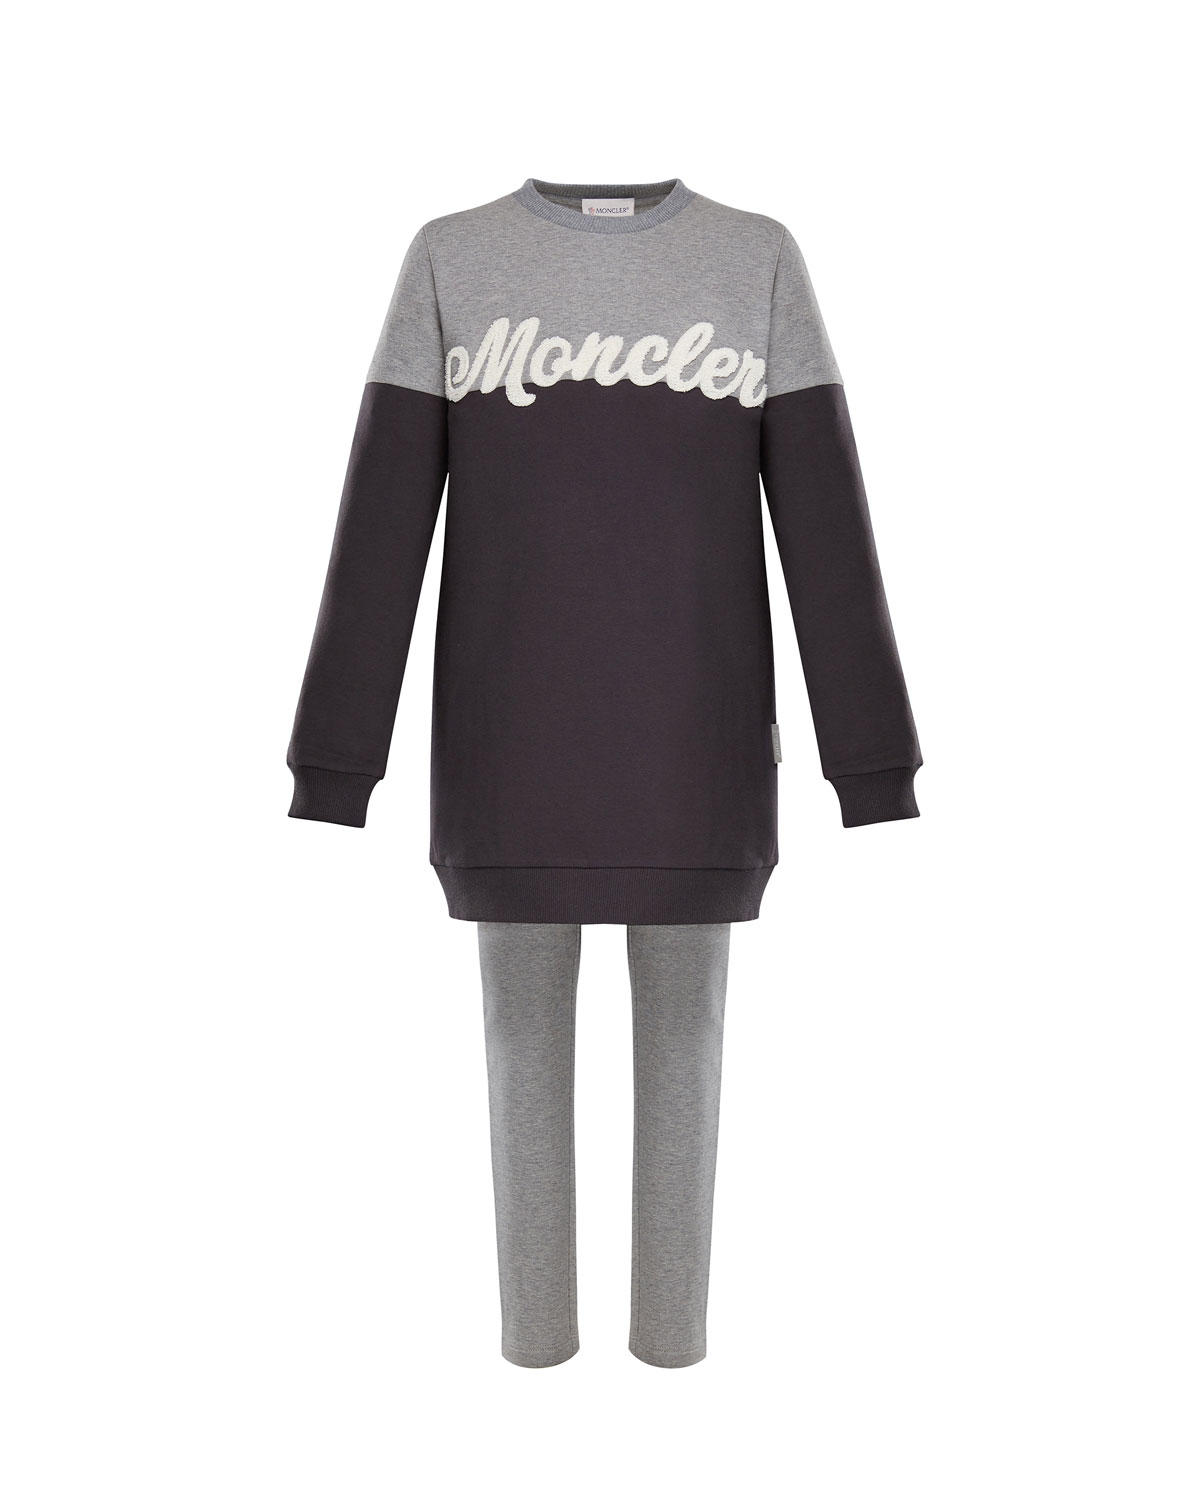 dda7e55723d39 Moncler Two-Tone Logo Sweater w/ Leggings, Size 4-6 and Matching ...